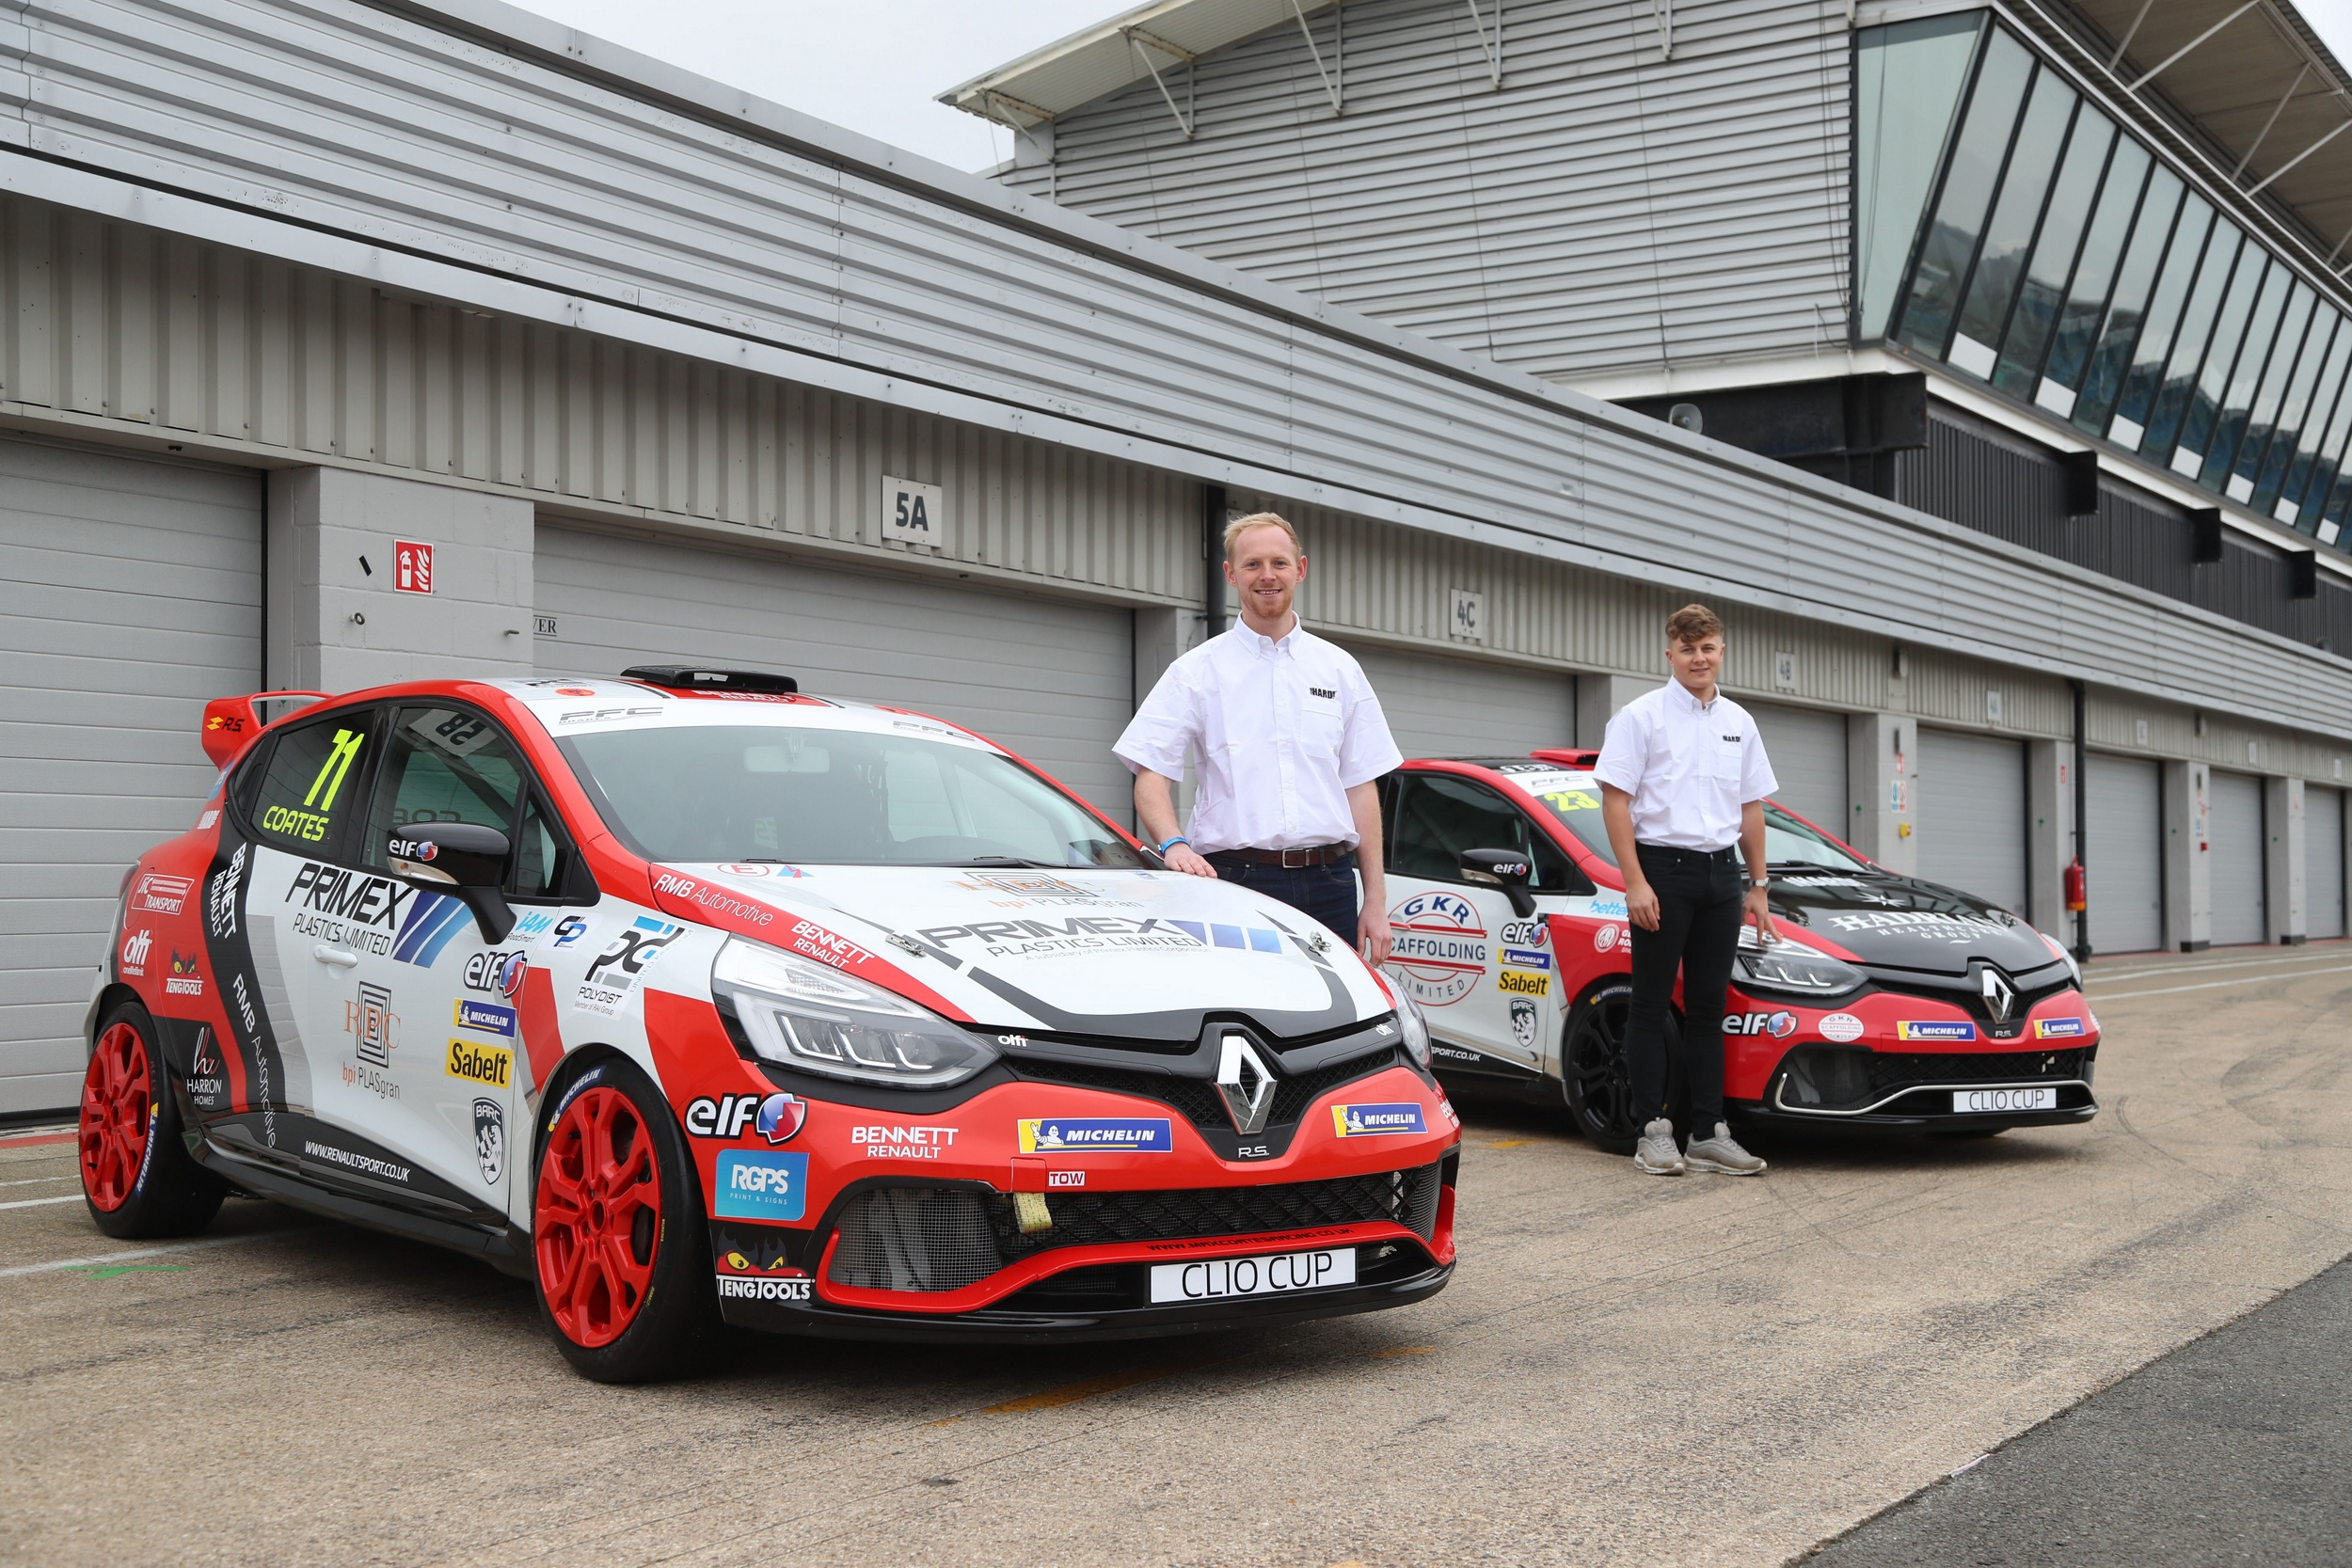 Renault UK Clio Cup Media Day - Credit J